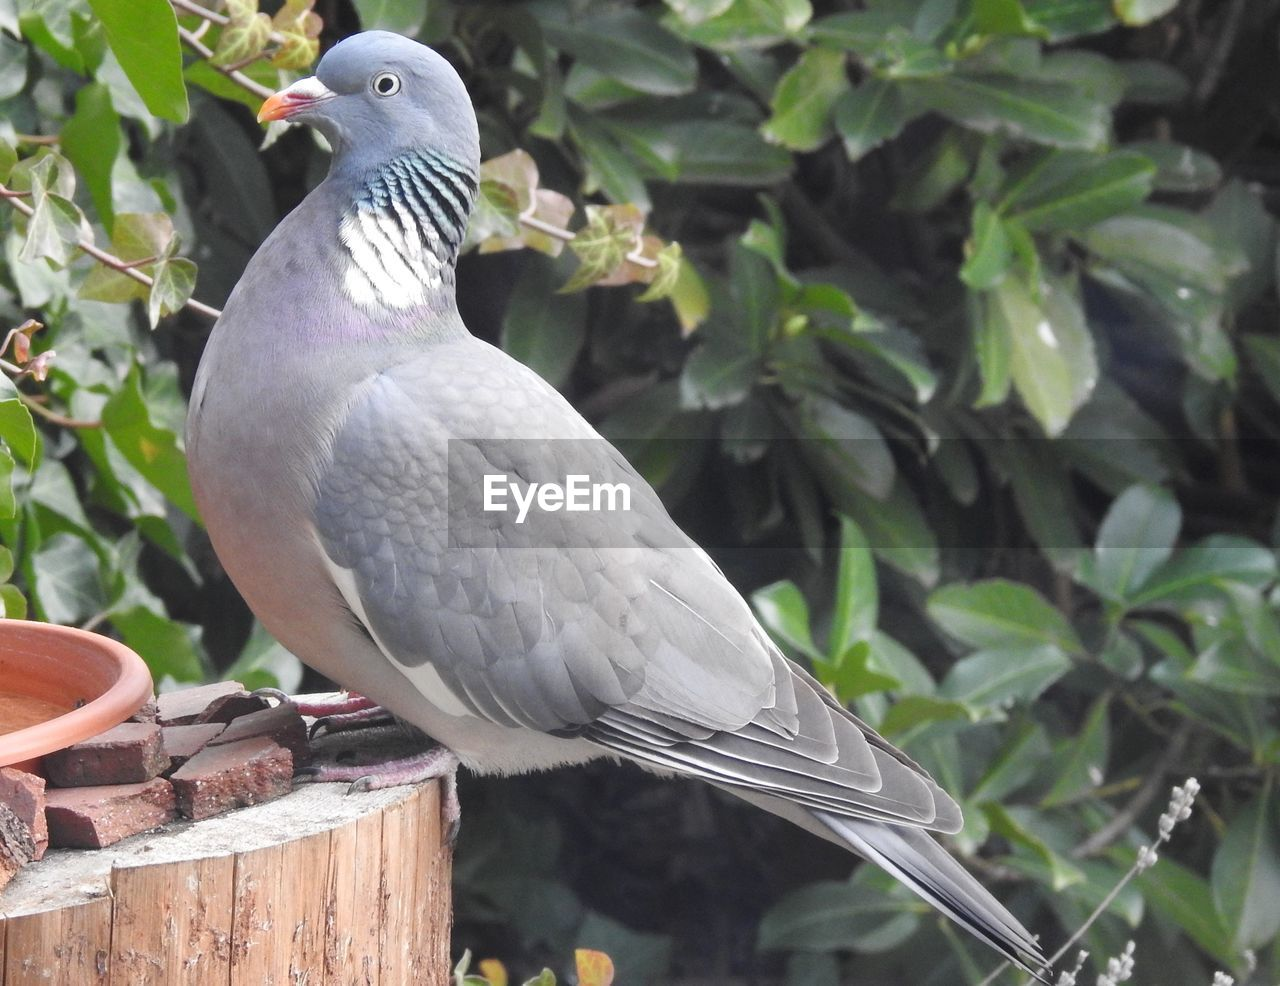 bird, vertebrate, animal themes, animal, animals in the wild, animal wildlife, perching, one animal, no people, tree, plant, close-up, day, nature, focus on foreground, dove - bird, branch, pigeon, outdoors, leaf